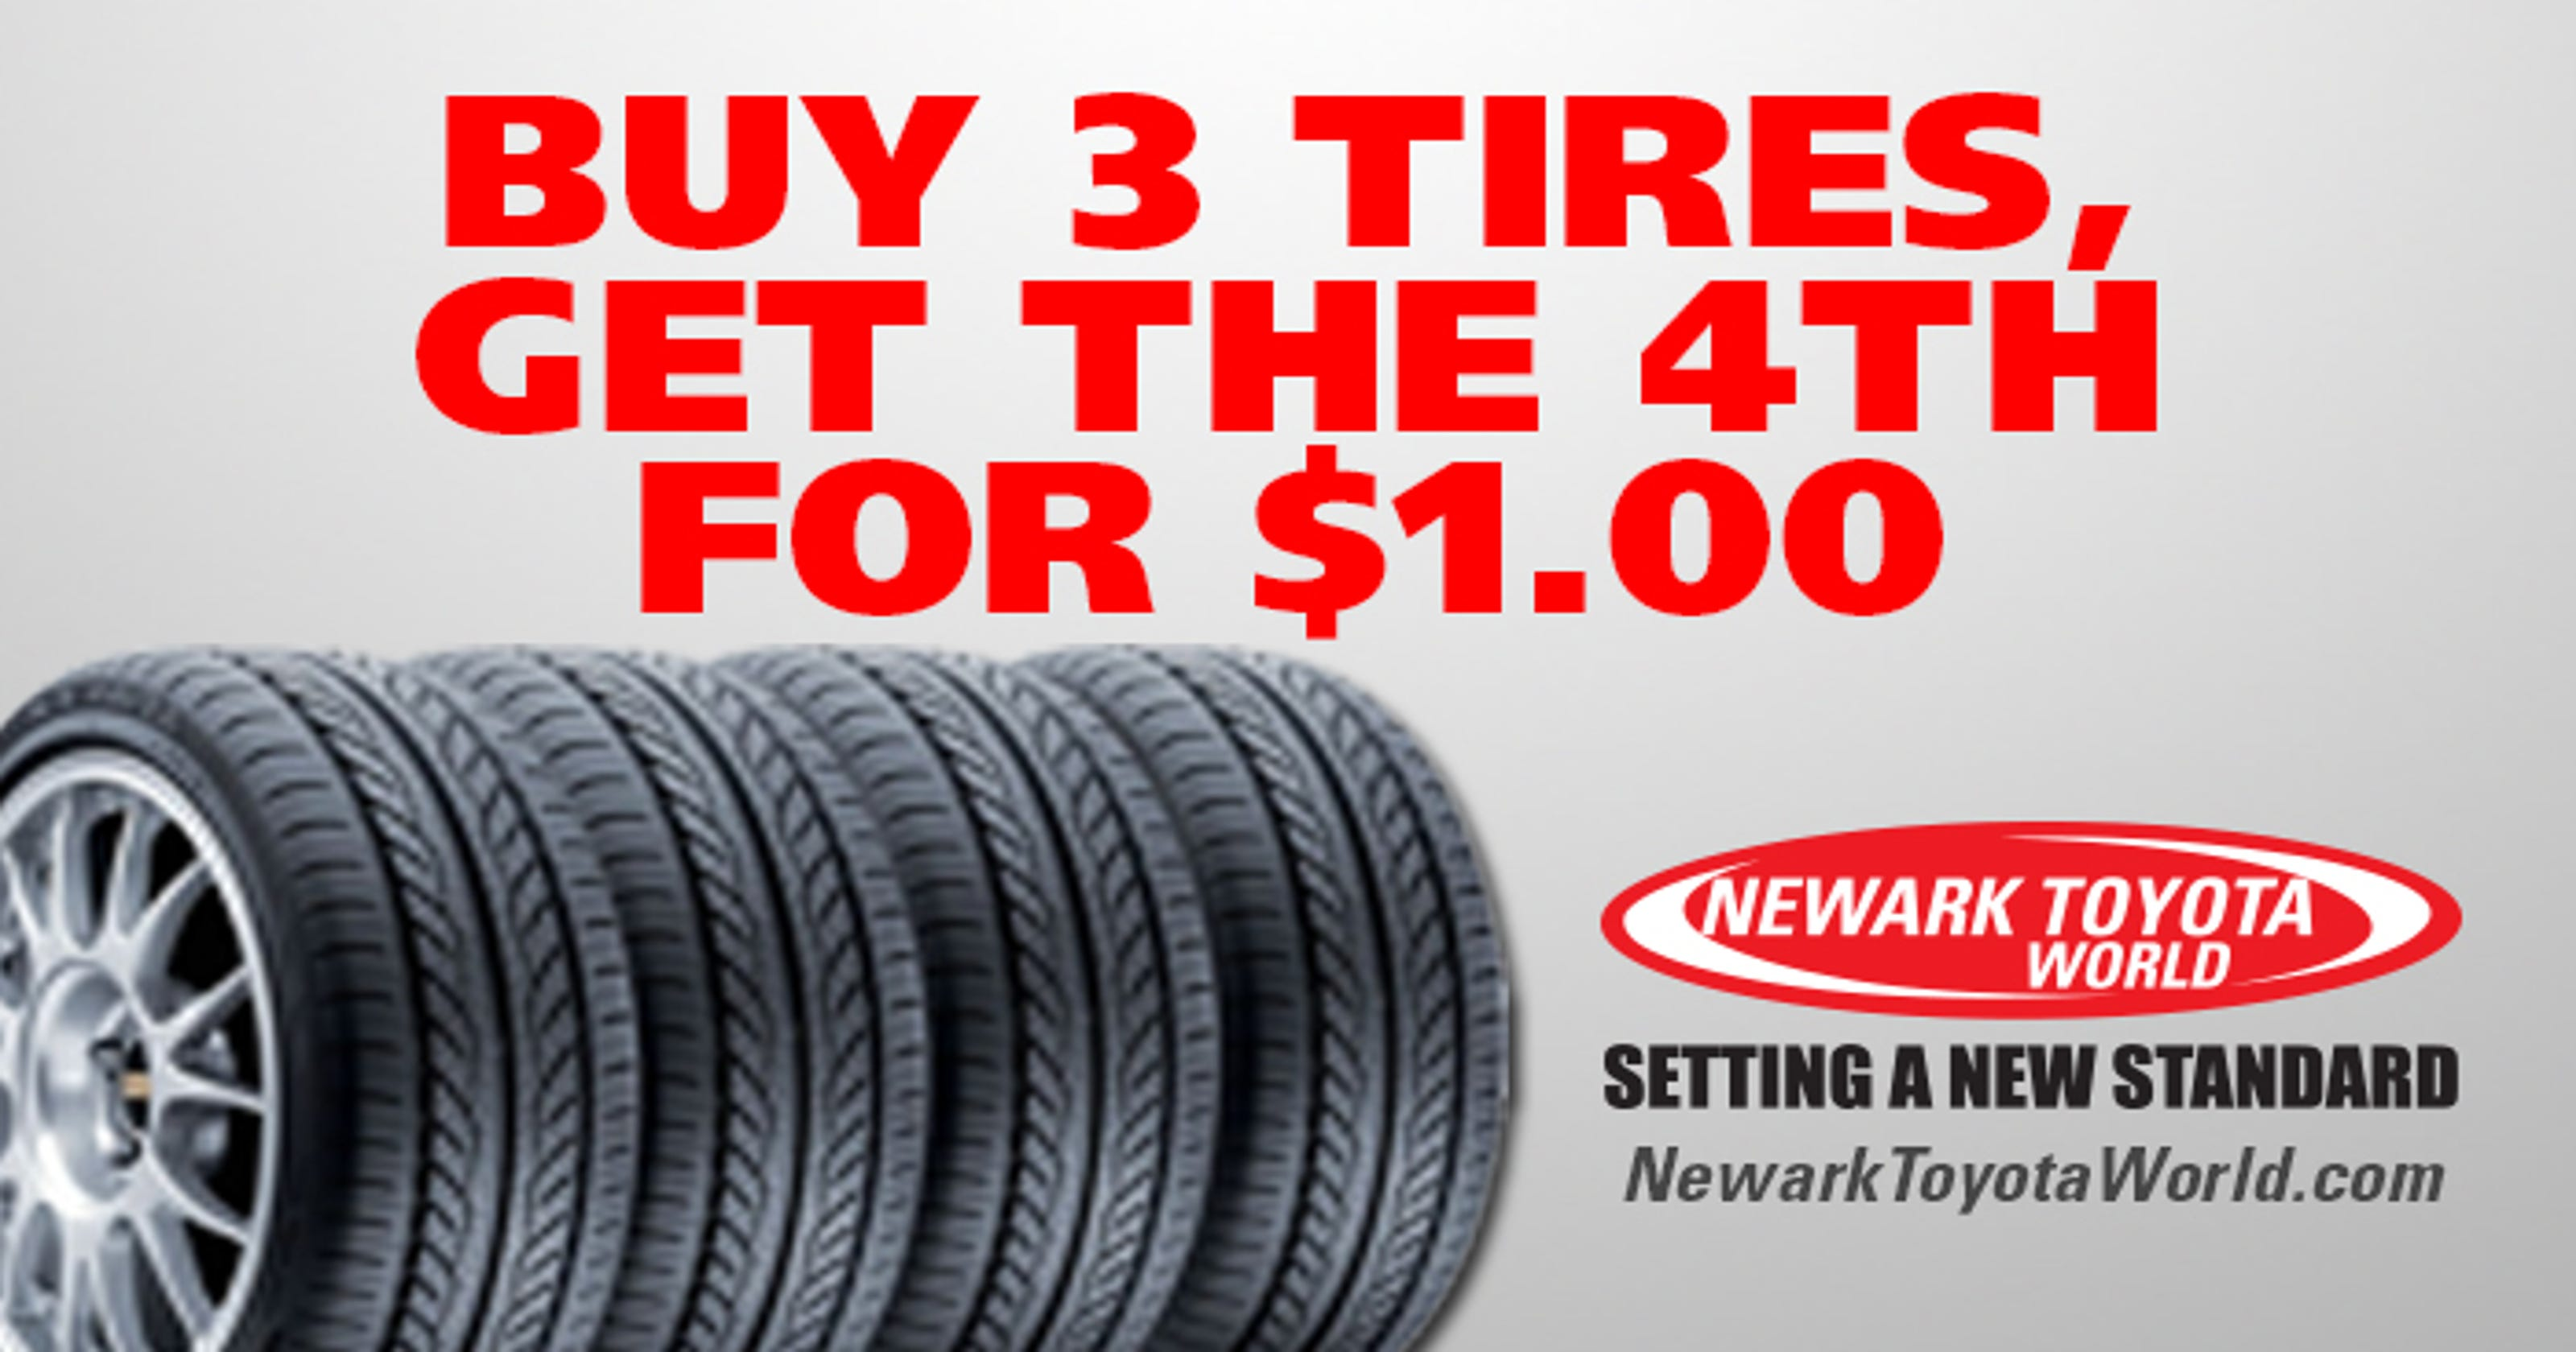 Buy 3 Tires Get The Fourth For 1